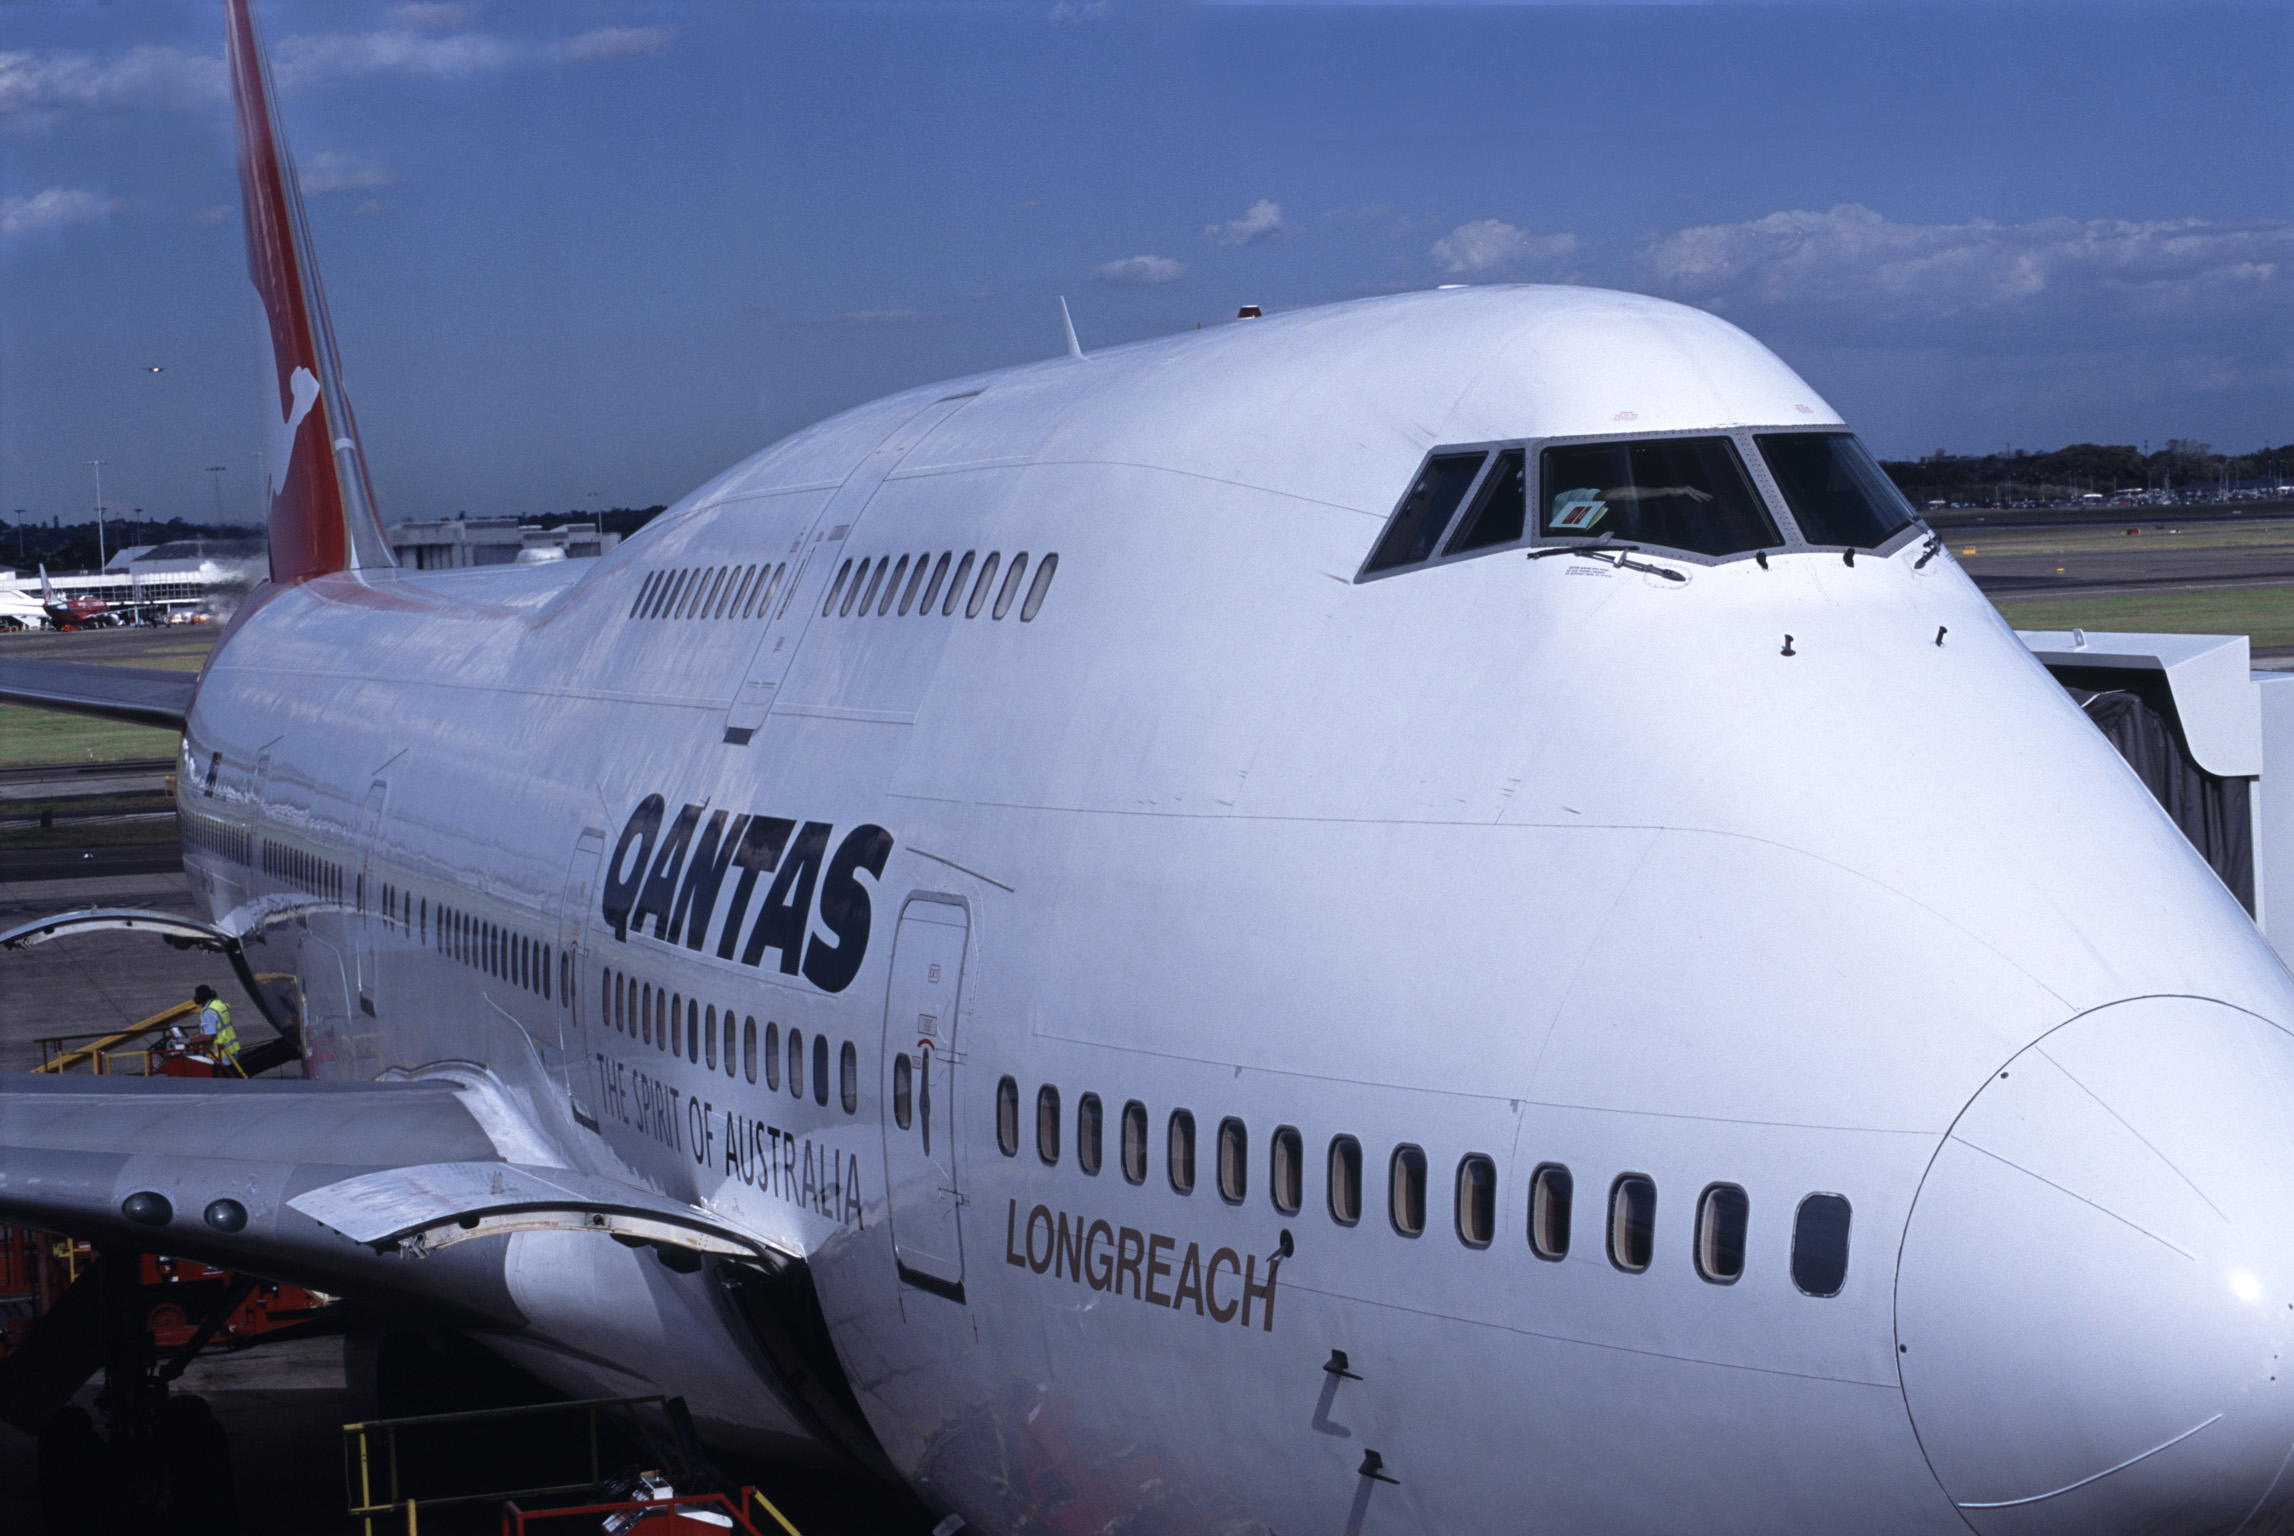 Qantas passenger airplane on the apron at an airport refueling and embarking passengers for an international flight, close up view of the front and pilots cockpit